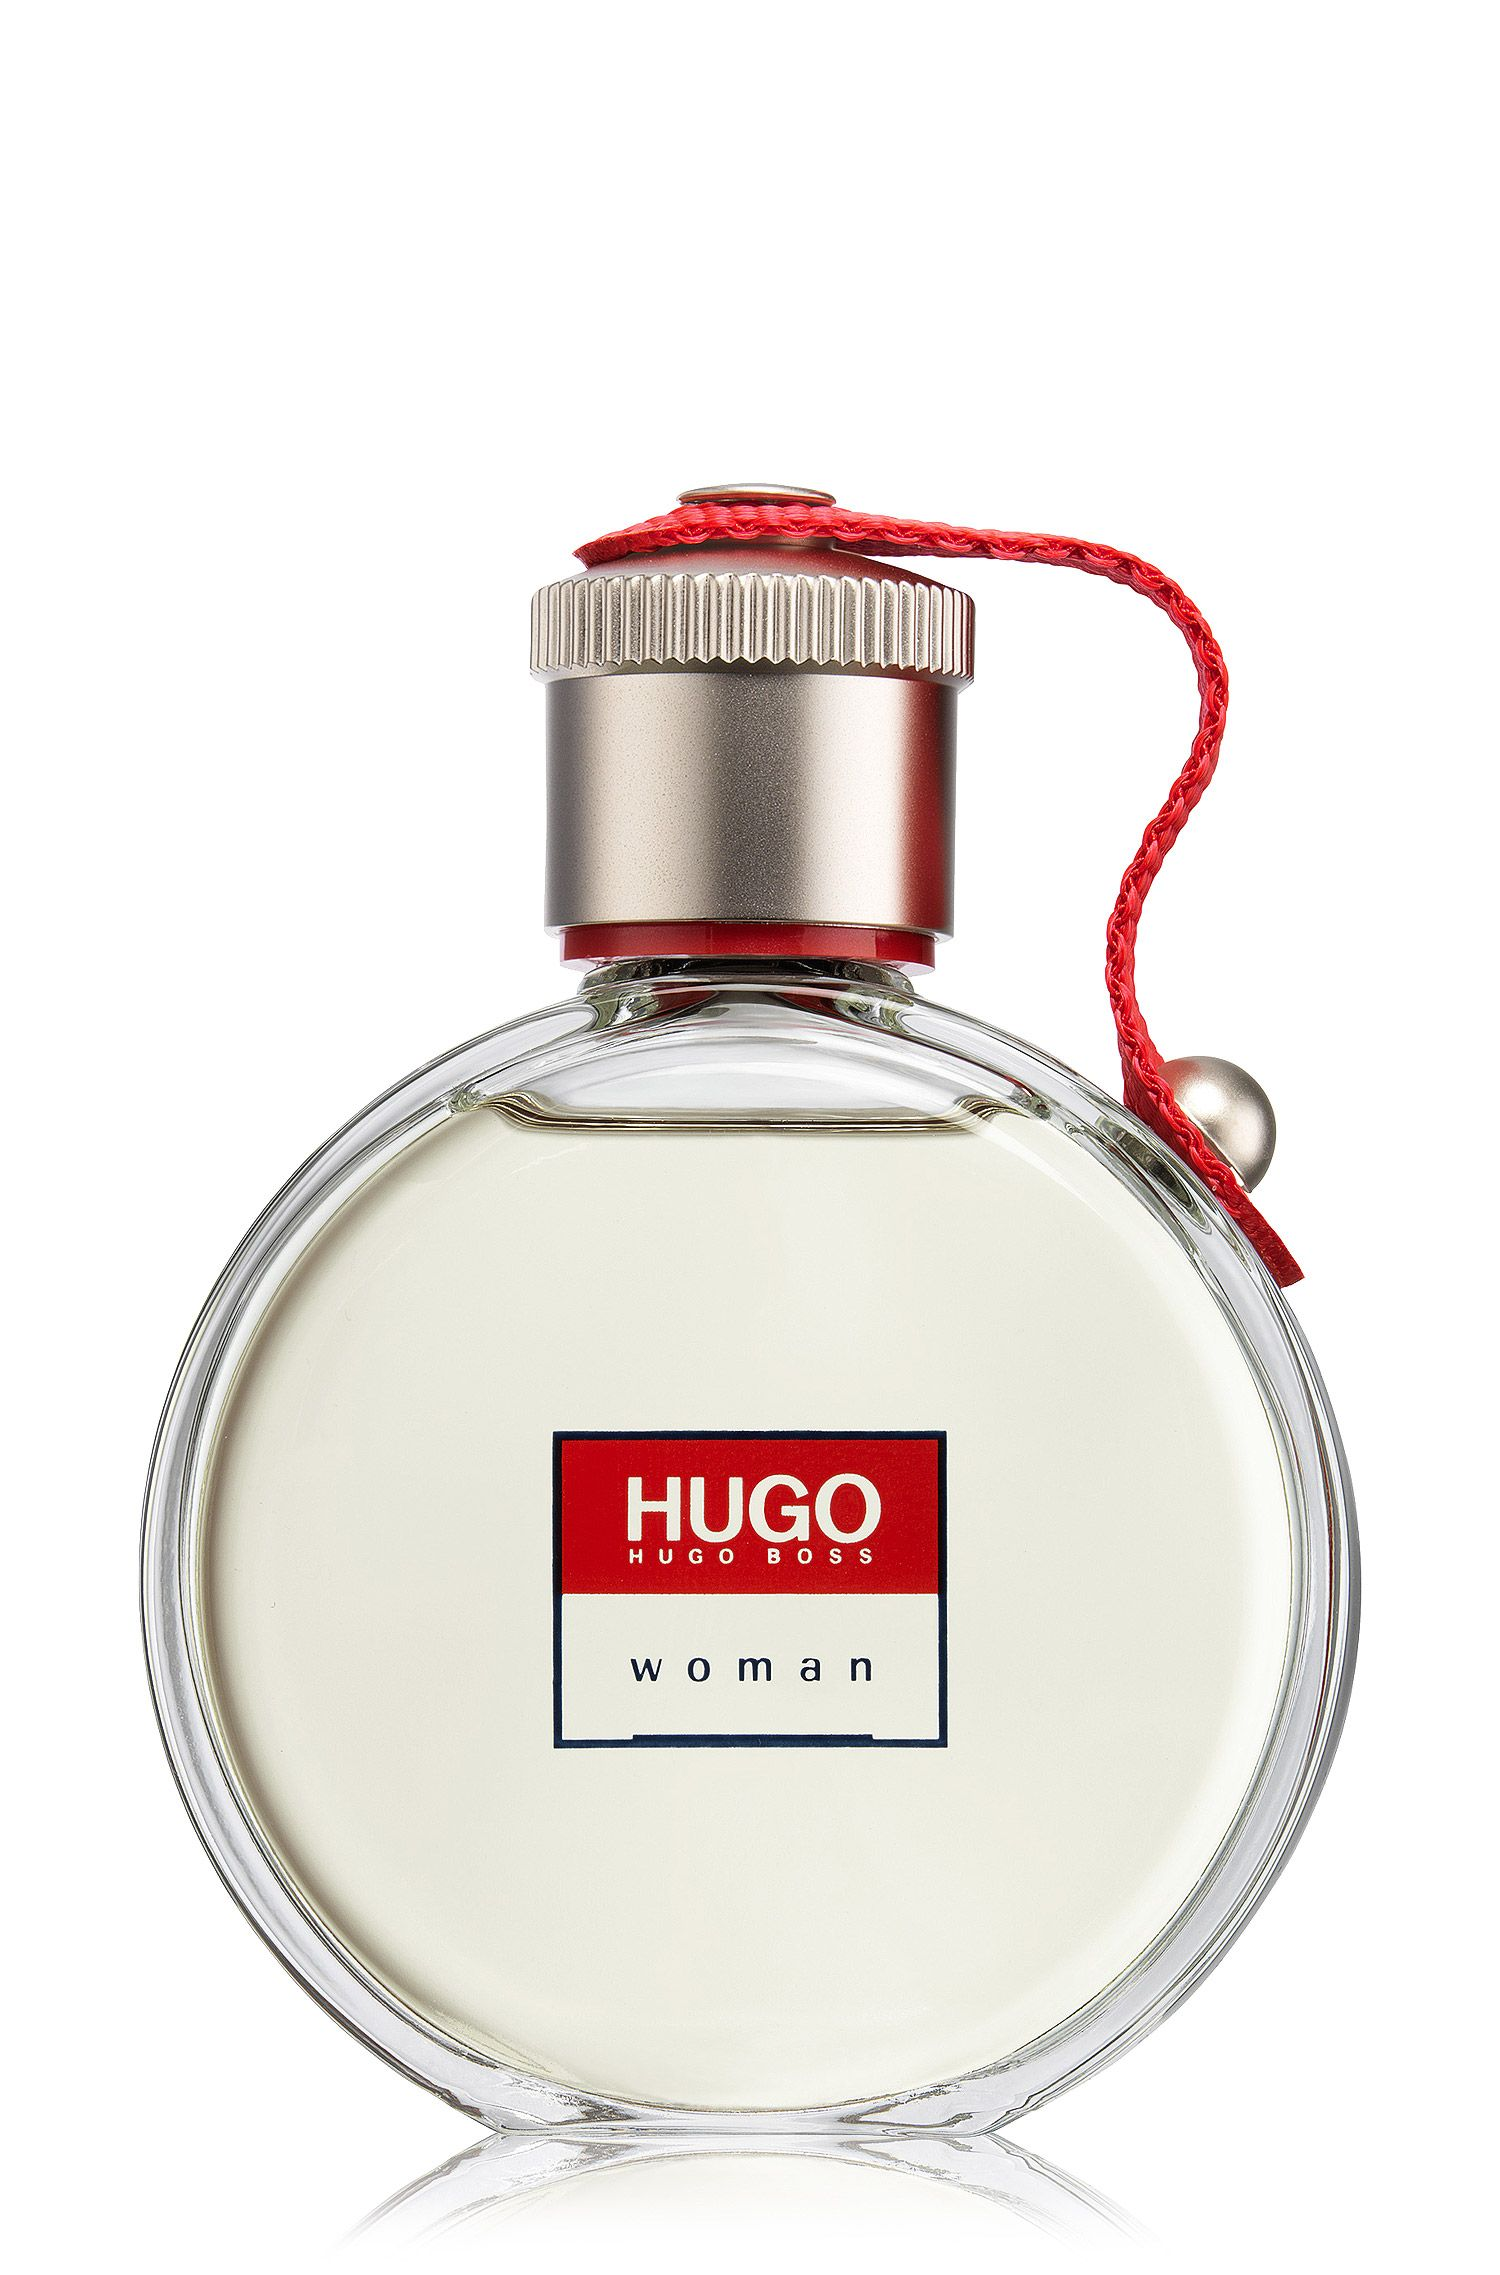 Eau de toilette HUGO Woman 75 ml